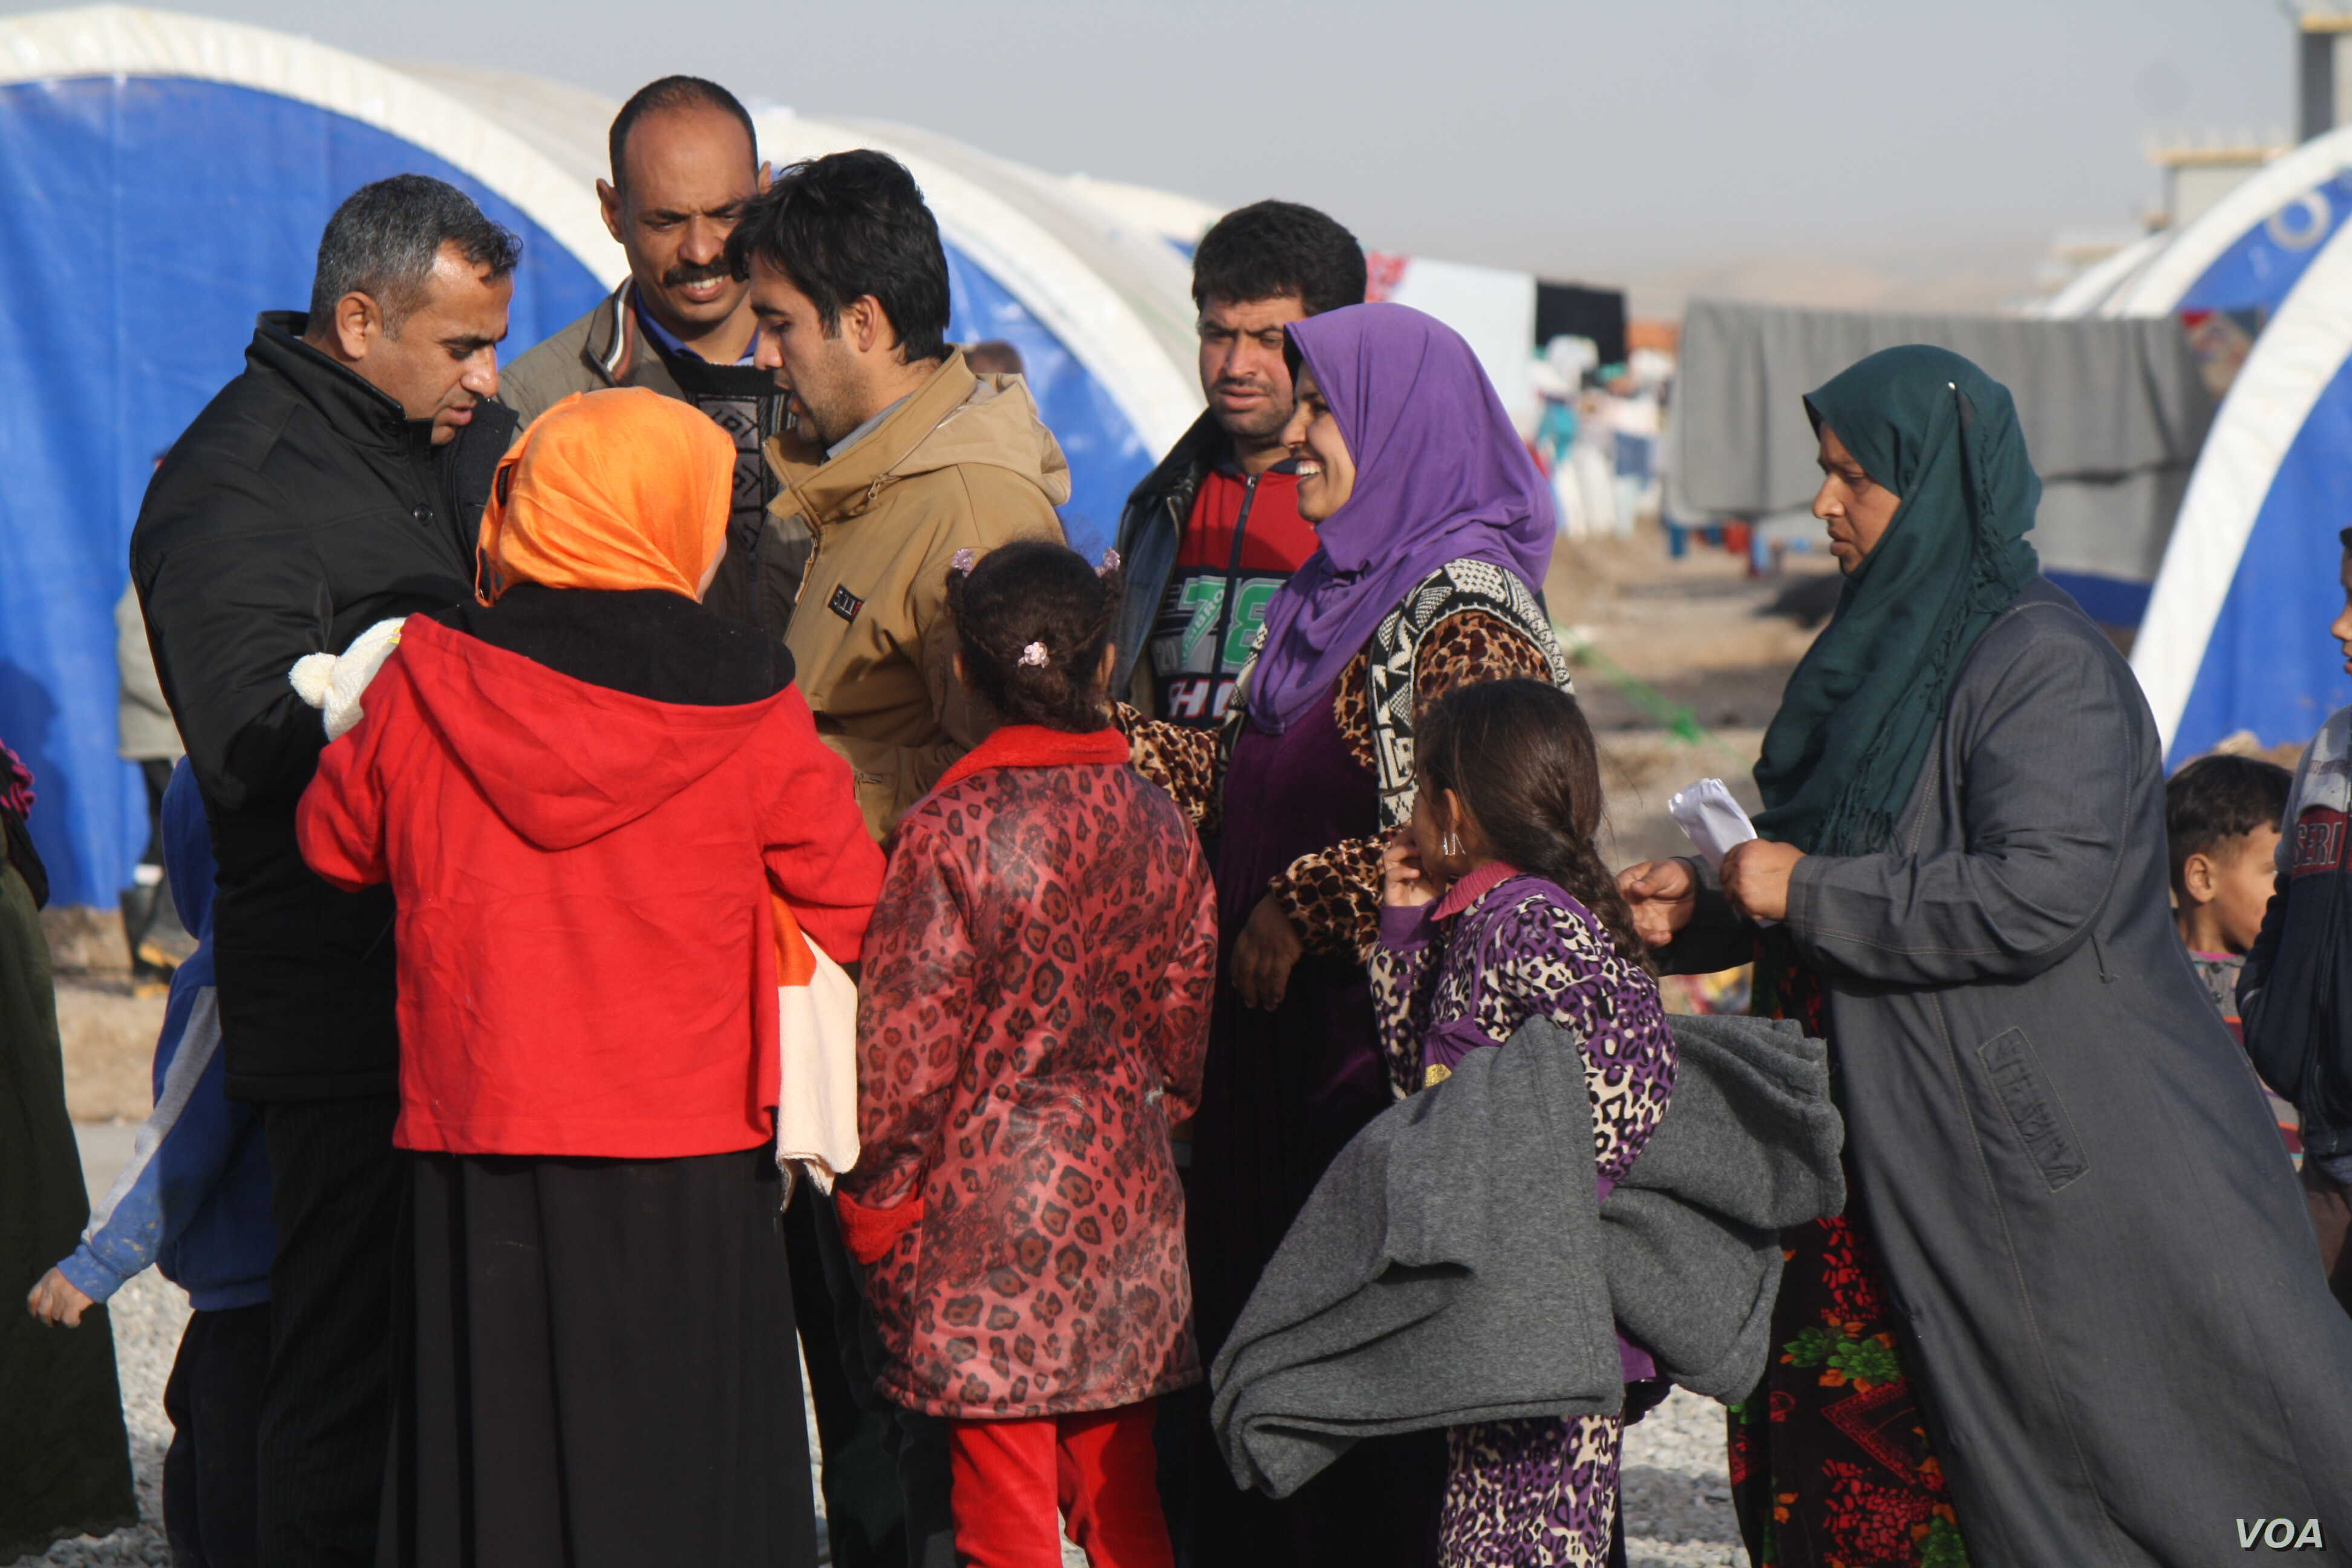 Families continue to flee IS-controlled areas in and around Mosul in favor of camps such as this one in Khazir, Kurdish Iraq, Jan. 10, 2017. The International Organization for Migration says 140,000 people have been displaced since the offensive to r...